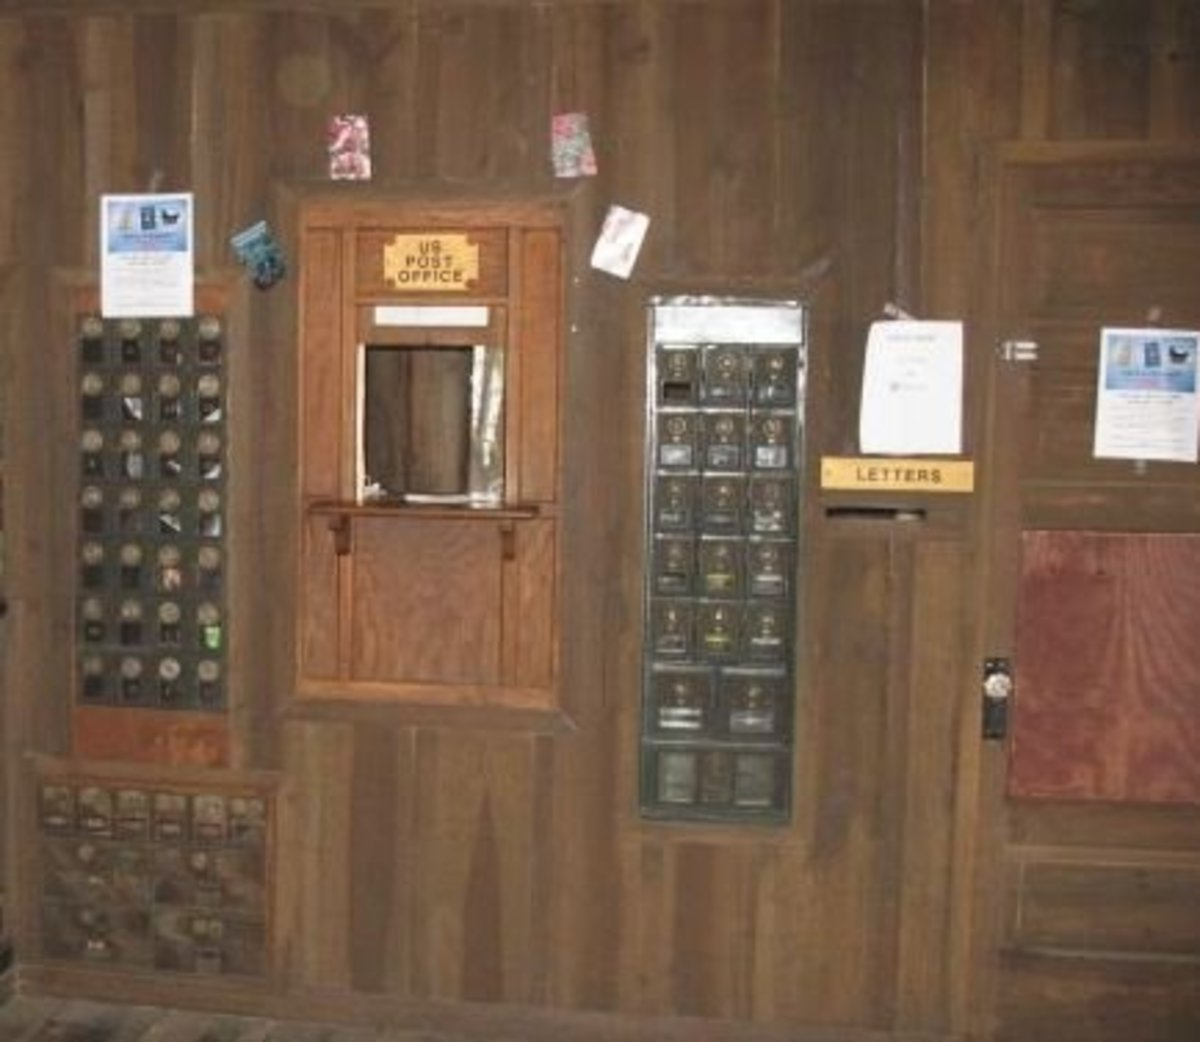 A typical small rural post office interior. This one is just outside of Plant City, Florida